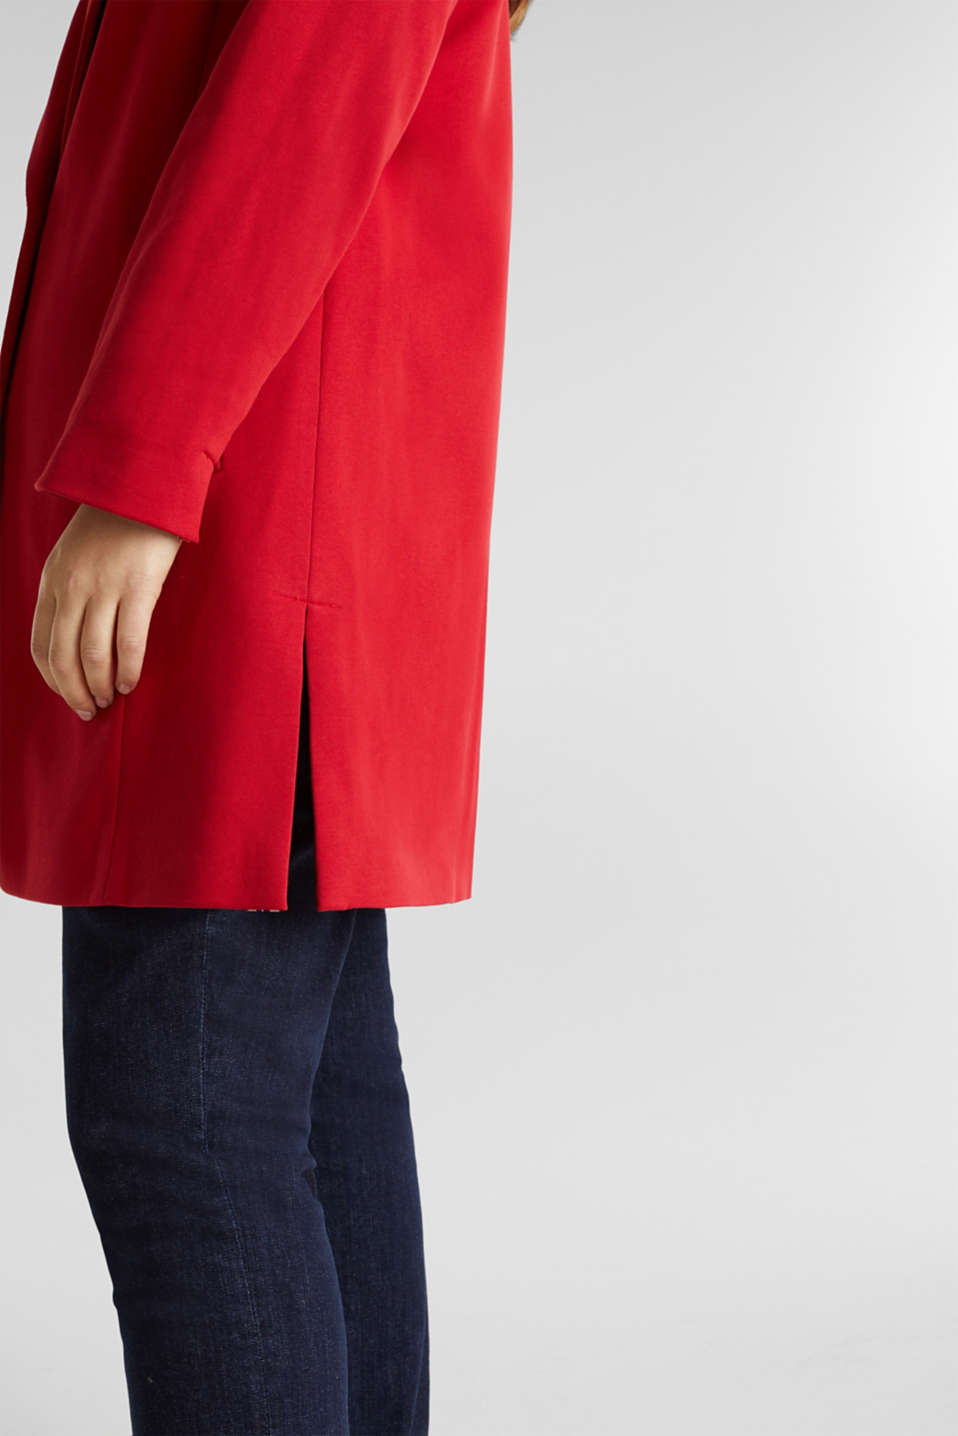 CURVY jersey coat with a striped lining, DARK RED, detail image number 5